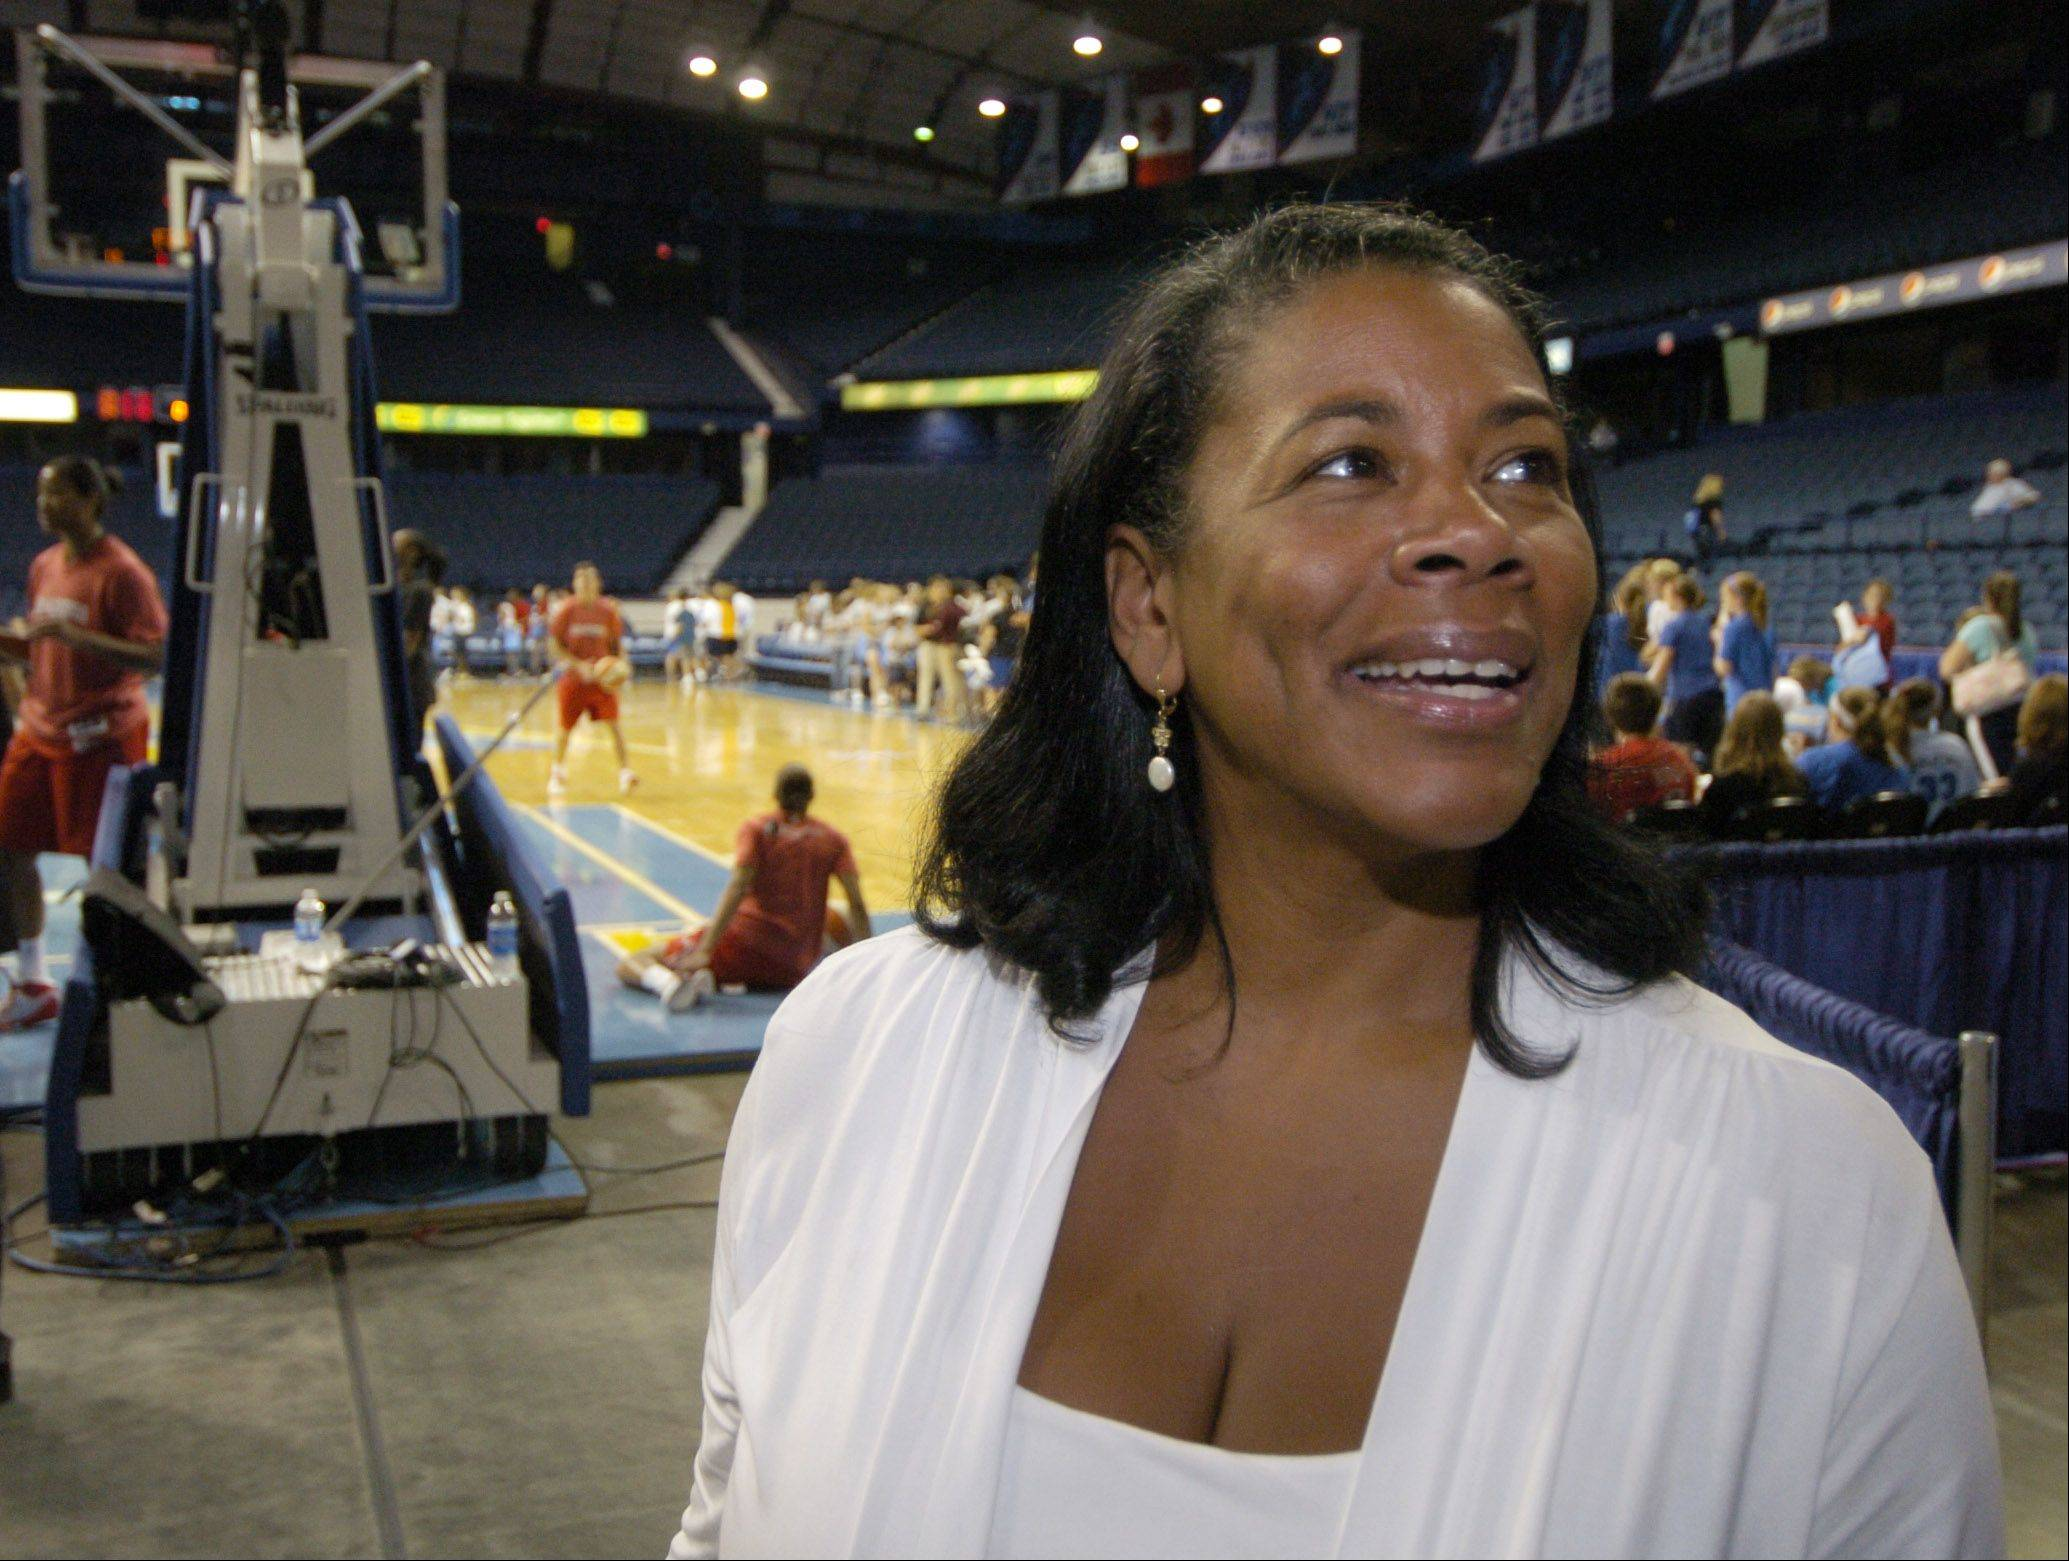 Laurel Richie, president of the WNBA, chats with team personnel prior to a Chicago Sky game at the Allstate Arena in Rosemont.